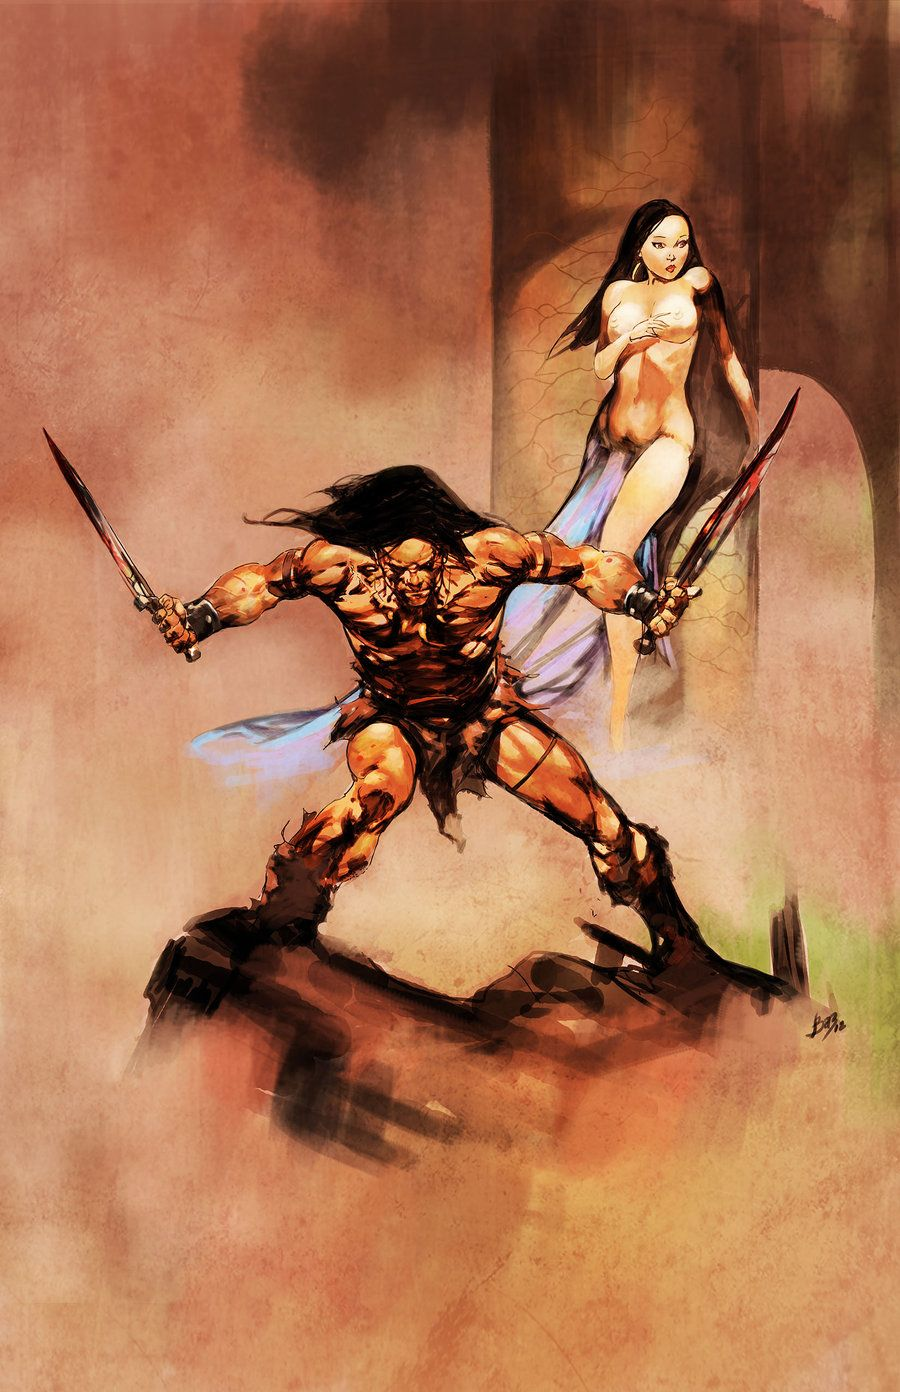 CONAN By Obazaldua On DeviantArt (With Images)